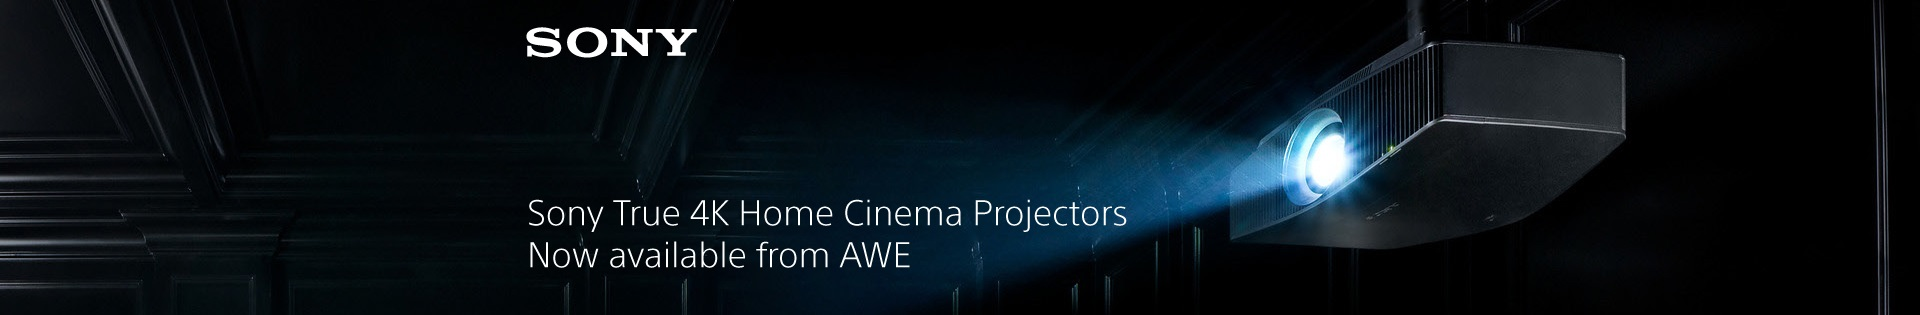 Sony Projectors At AWE